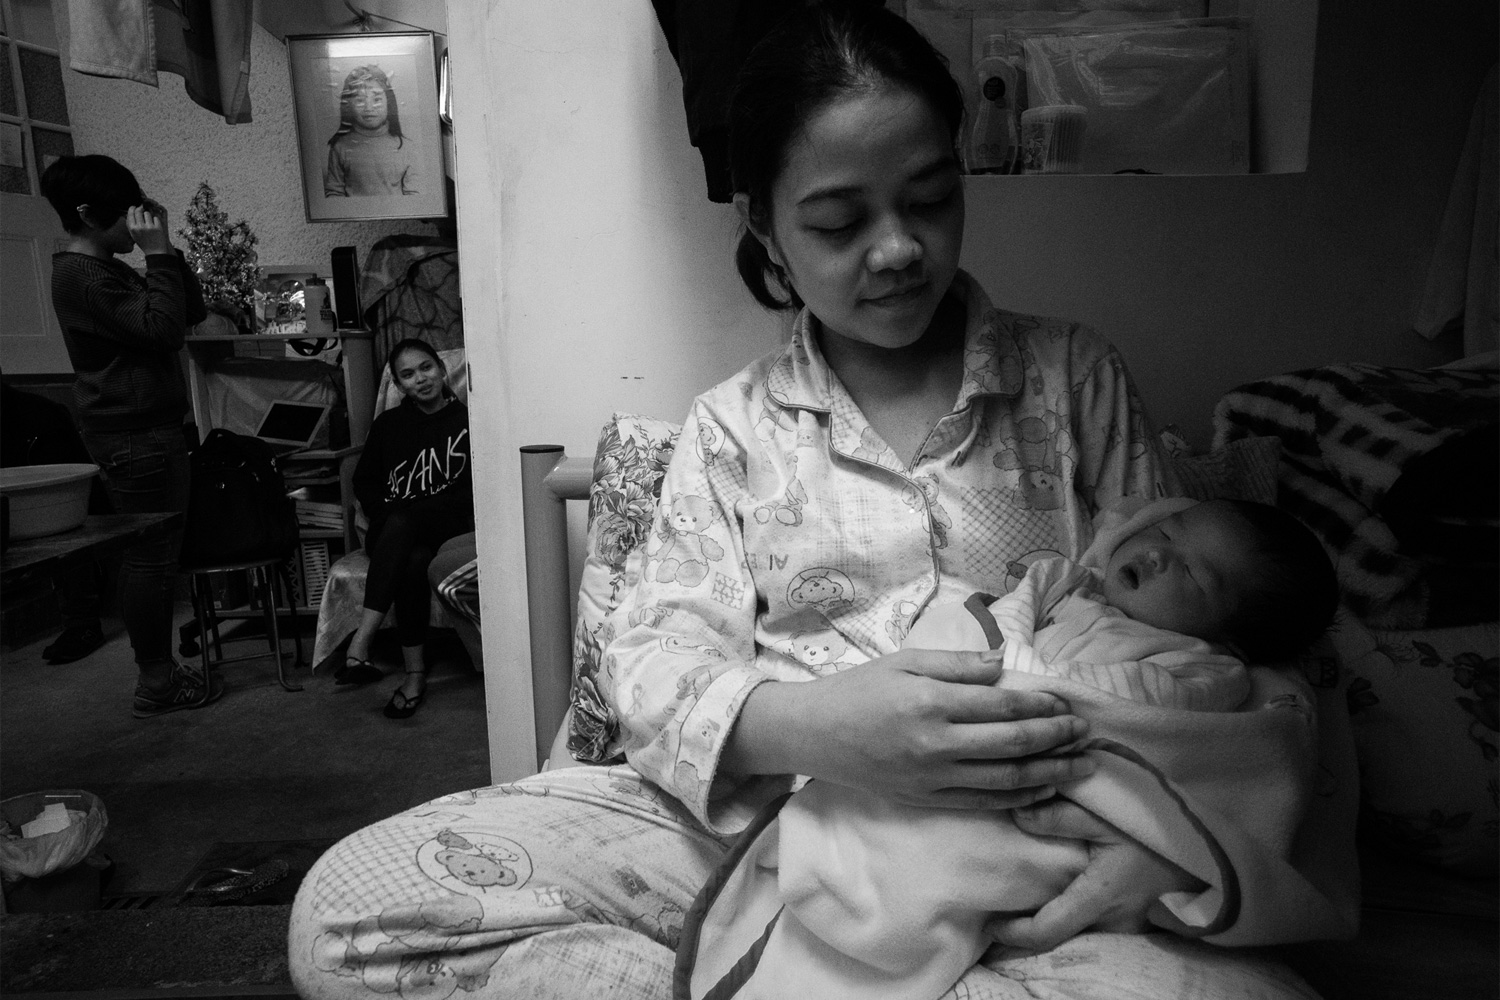 Queenie, a Filipina domestic worker, holds her seven-day-old baby, Yuan. When Queenie learned that she was pregnant, she asked her employer to allow her to return to the Philippines. The next day, the police arrived at her workplace and told her that her employer had accused her of stealing an earring. She was ultimately convicted of that crime and sentenced to imprisonment. Queenie believes her employer wanted to avoid paying her maternity leave. Prison authorities brought her to a hospital to deliver her baby, who was born on January 1, 2015, and since she had served out her sentence she was released from custody a few days later. With nowhere to go, Queenie ended up at the Kowloon Union church, where a minister saw her crying. She was referred to Bethune House for shelter and aid.